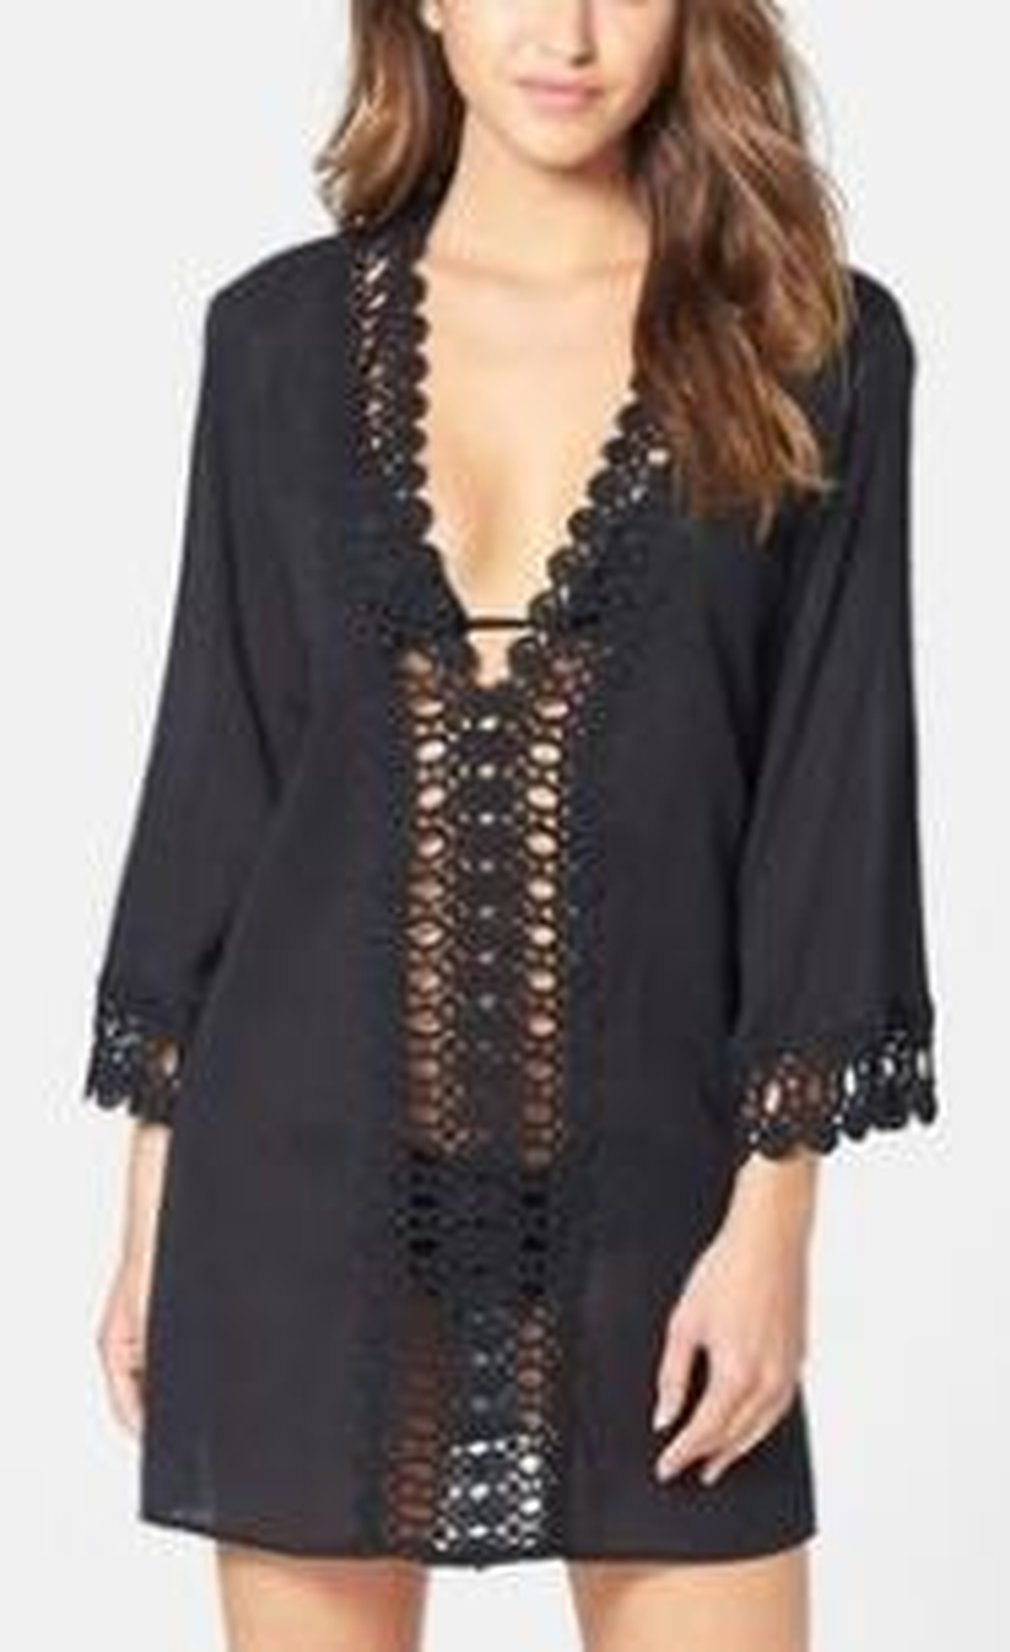 Women Floral Lace Hollow Out Sexy V-neck 3/4 Sleeve Bikini Cover Beach Bikini Cover-ups Dress Swimsuits Wrap Skirt